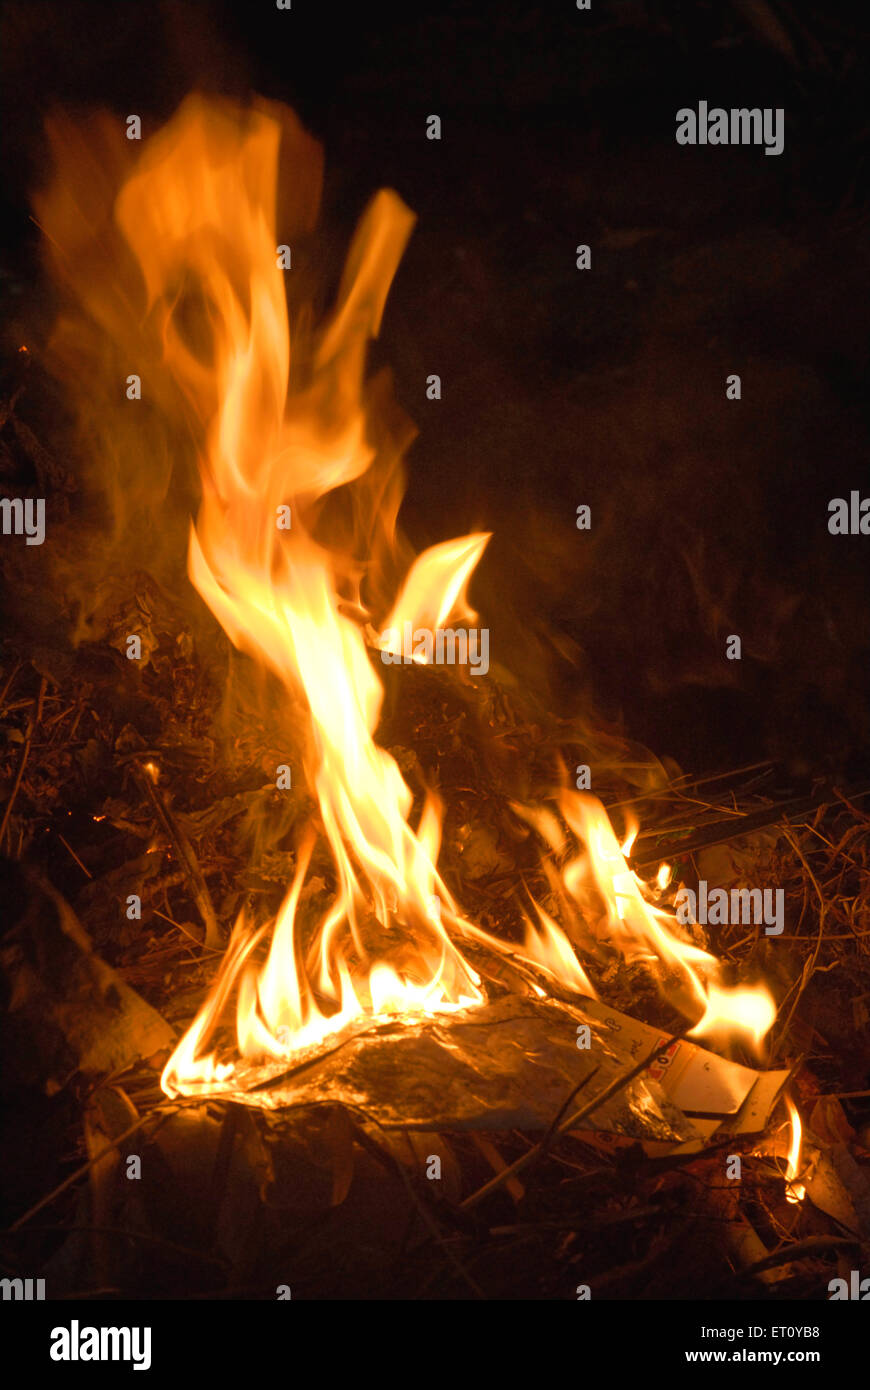 Fire flame burning of garbage - Stock Image